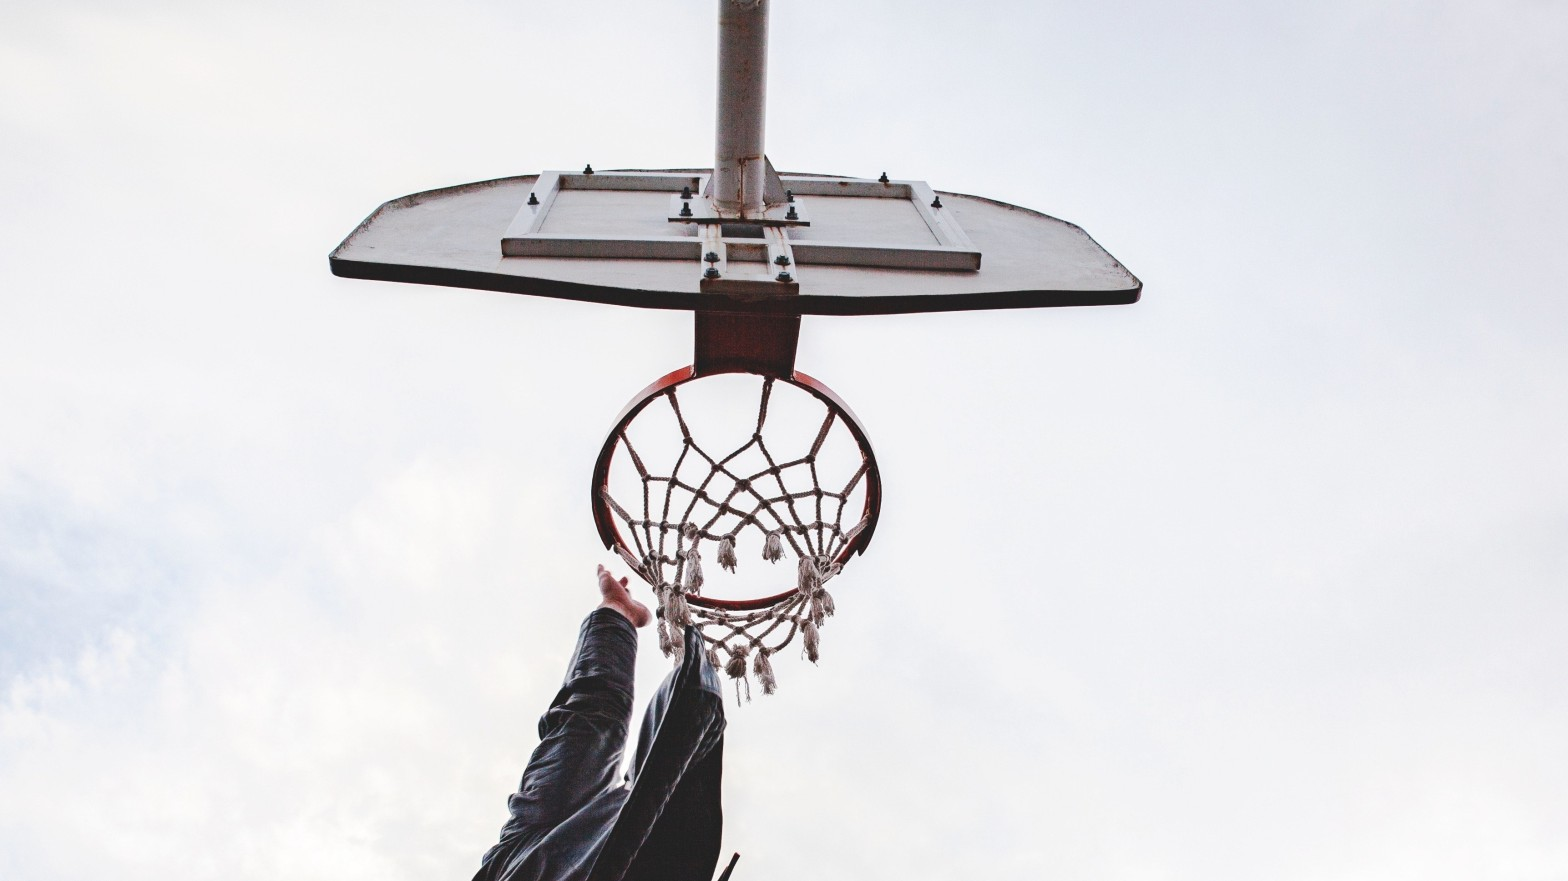 Training to dunk in my 40s